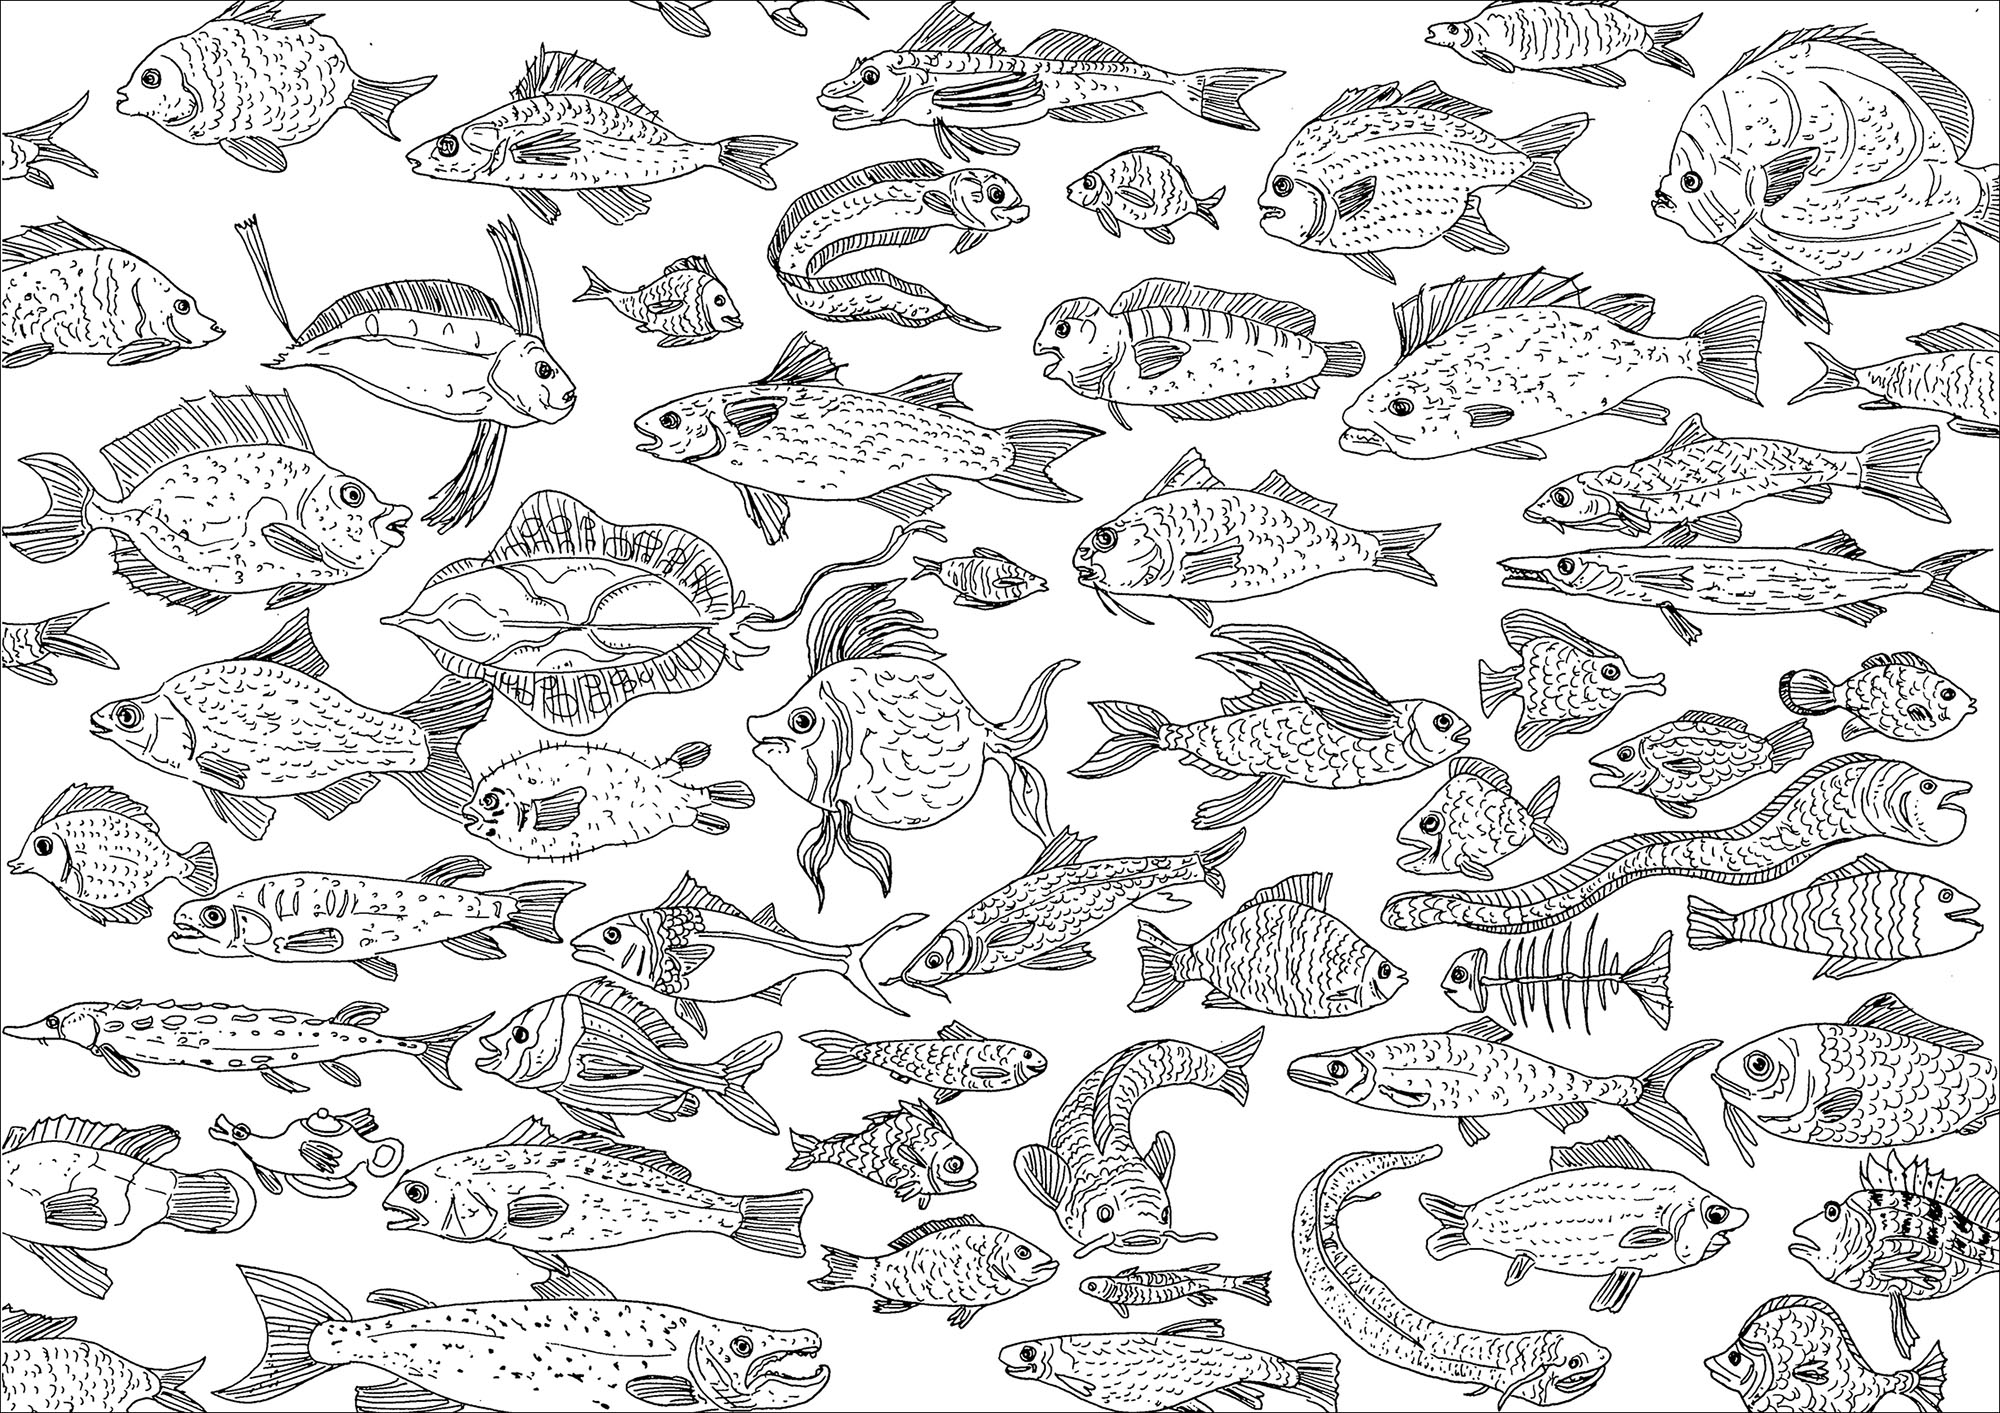 Numerous Fishes